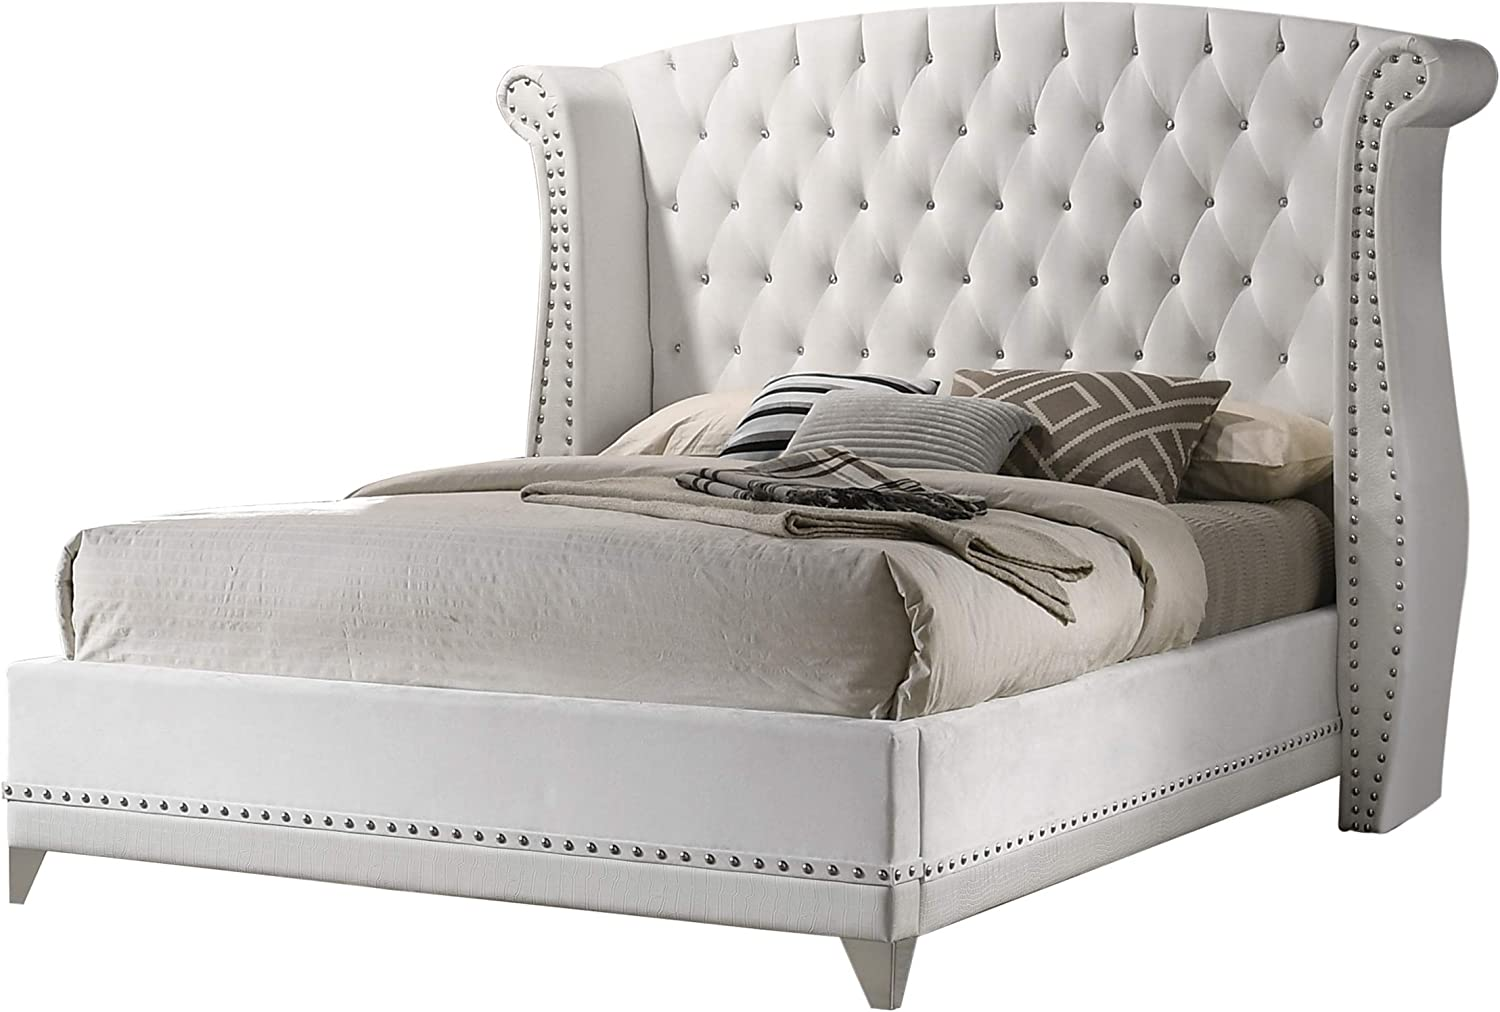 Coaster Home Furnishings Barzini Queen Wingback Tufted Bed White Panel